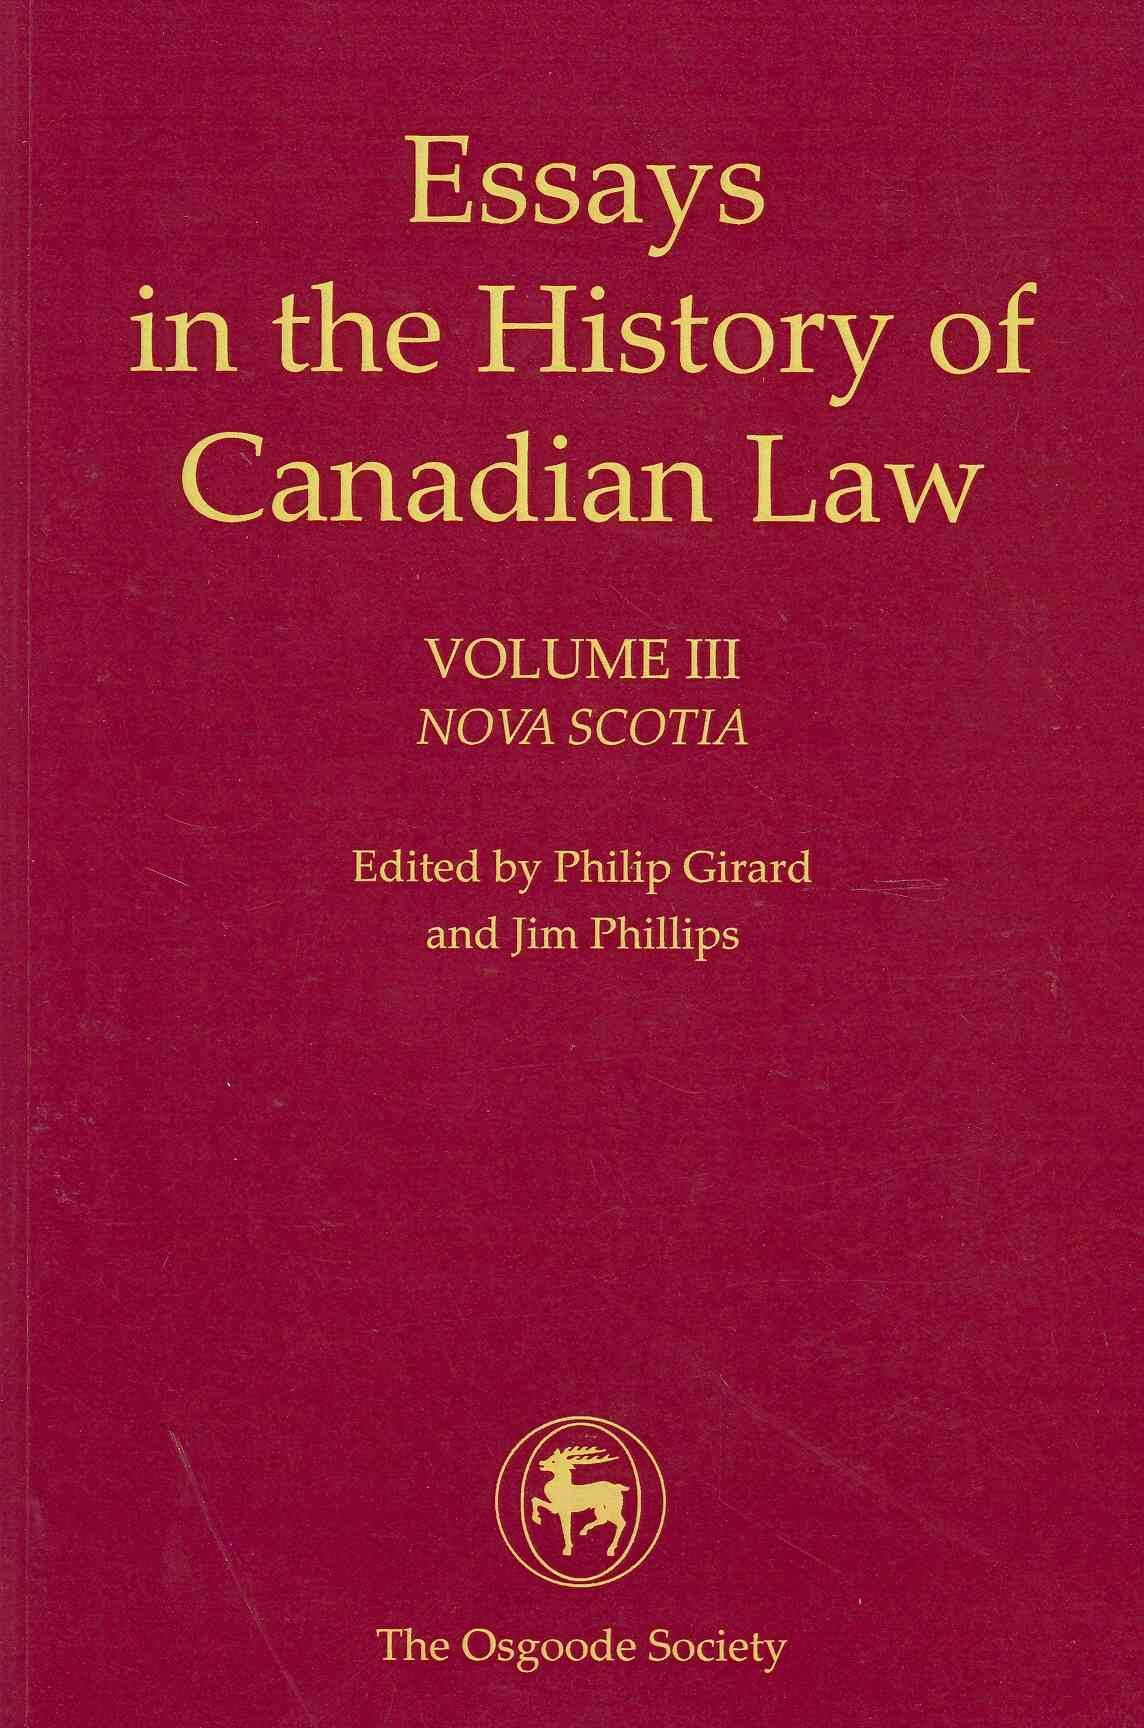 essays history canadian law